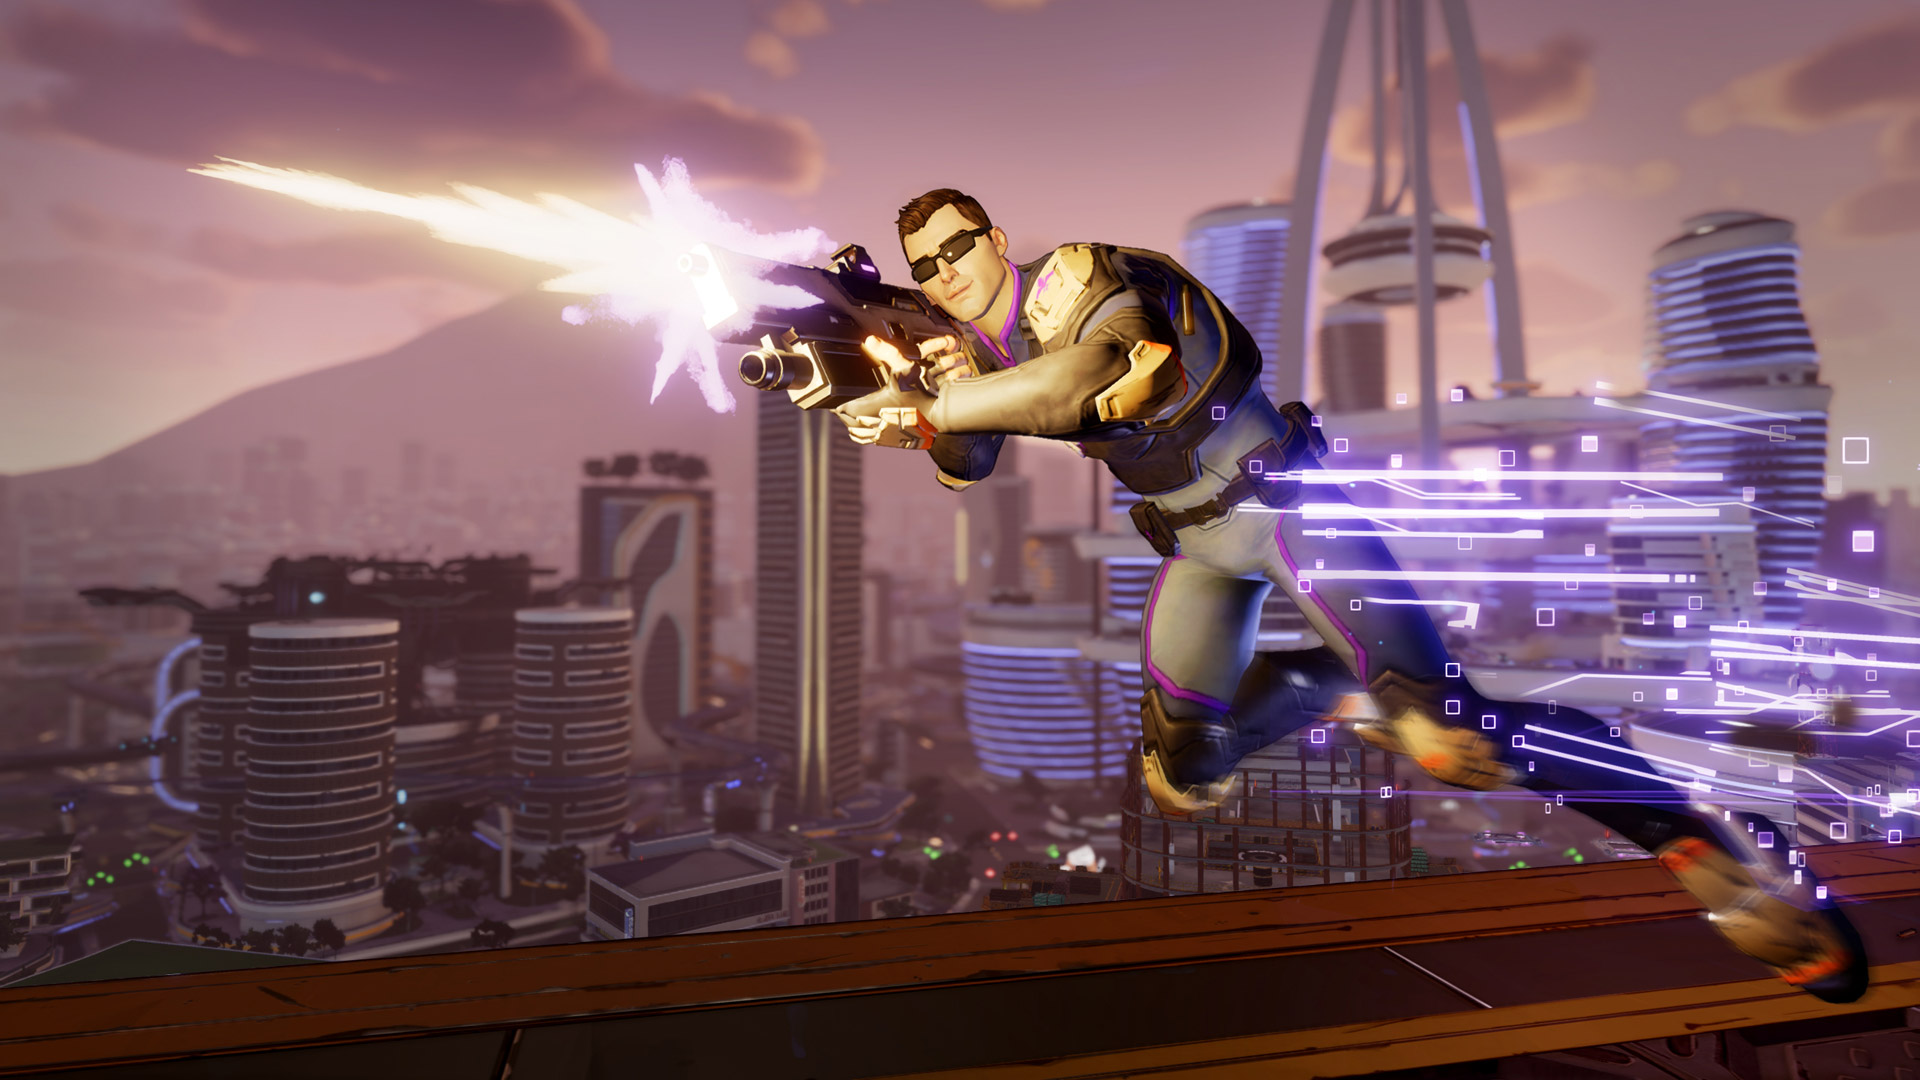 Free Agents of Mayhem Wallpaper in 1920x1080